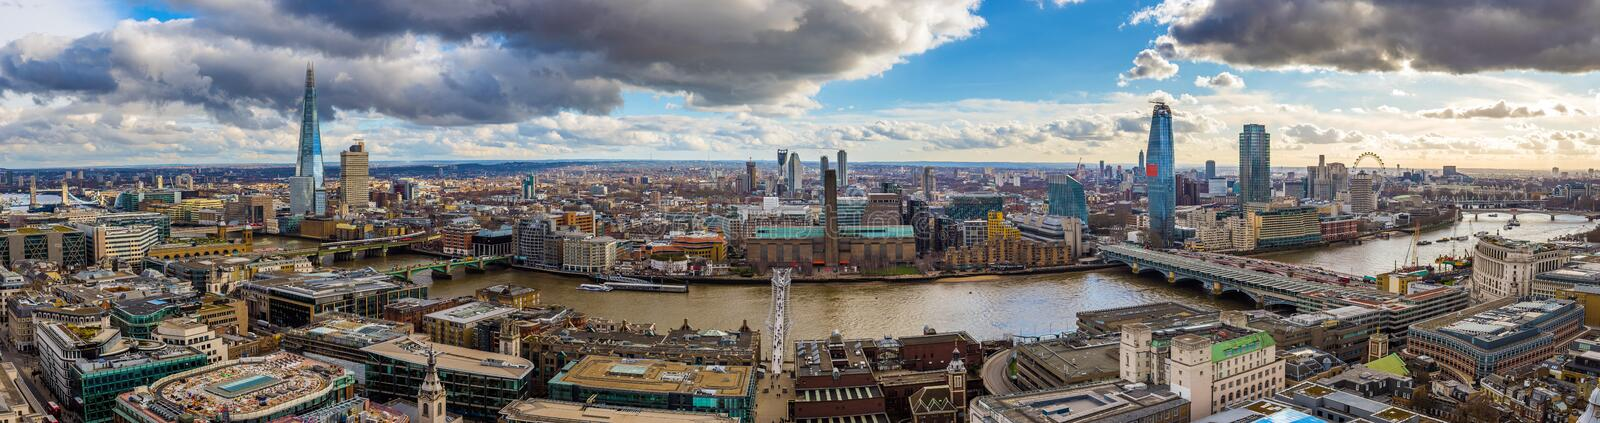 London, England - Panoramic skyline view of London with Millennium Bridge, famous skyscrapers and other landmarks royalty free stock images